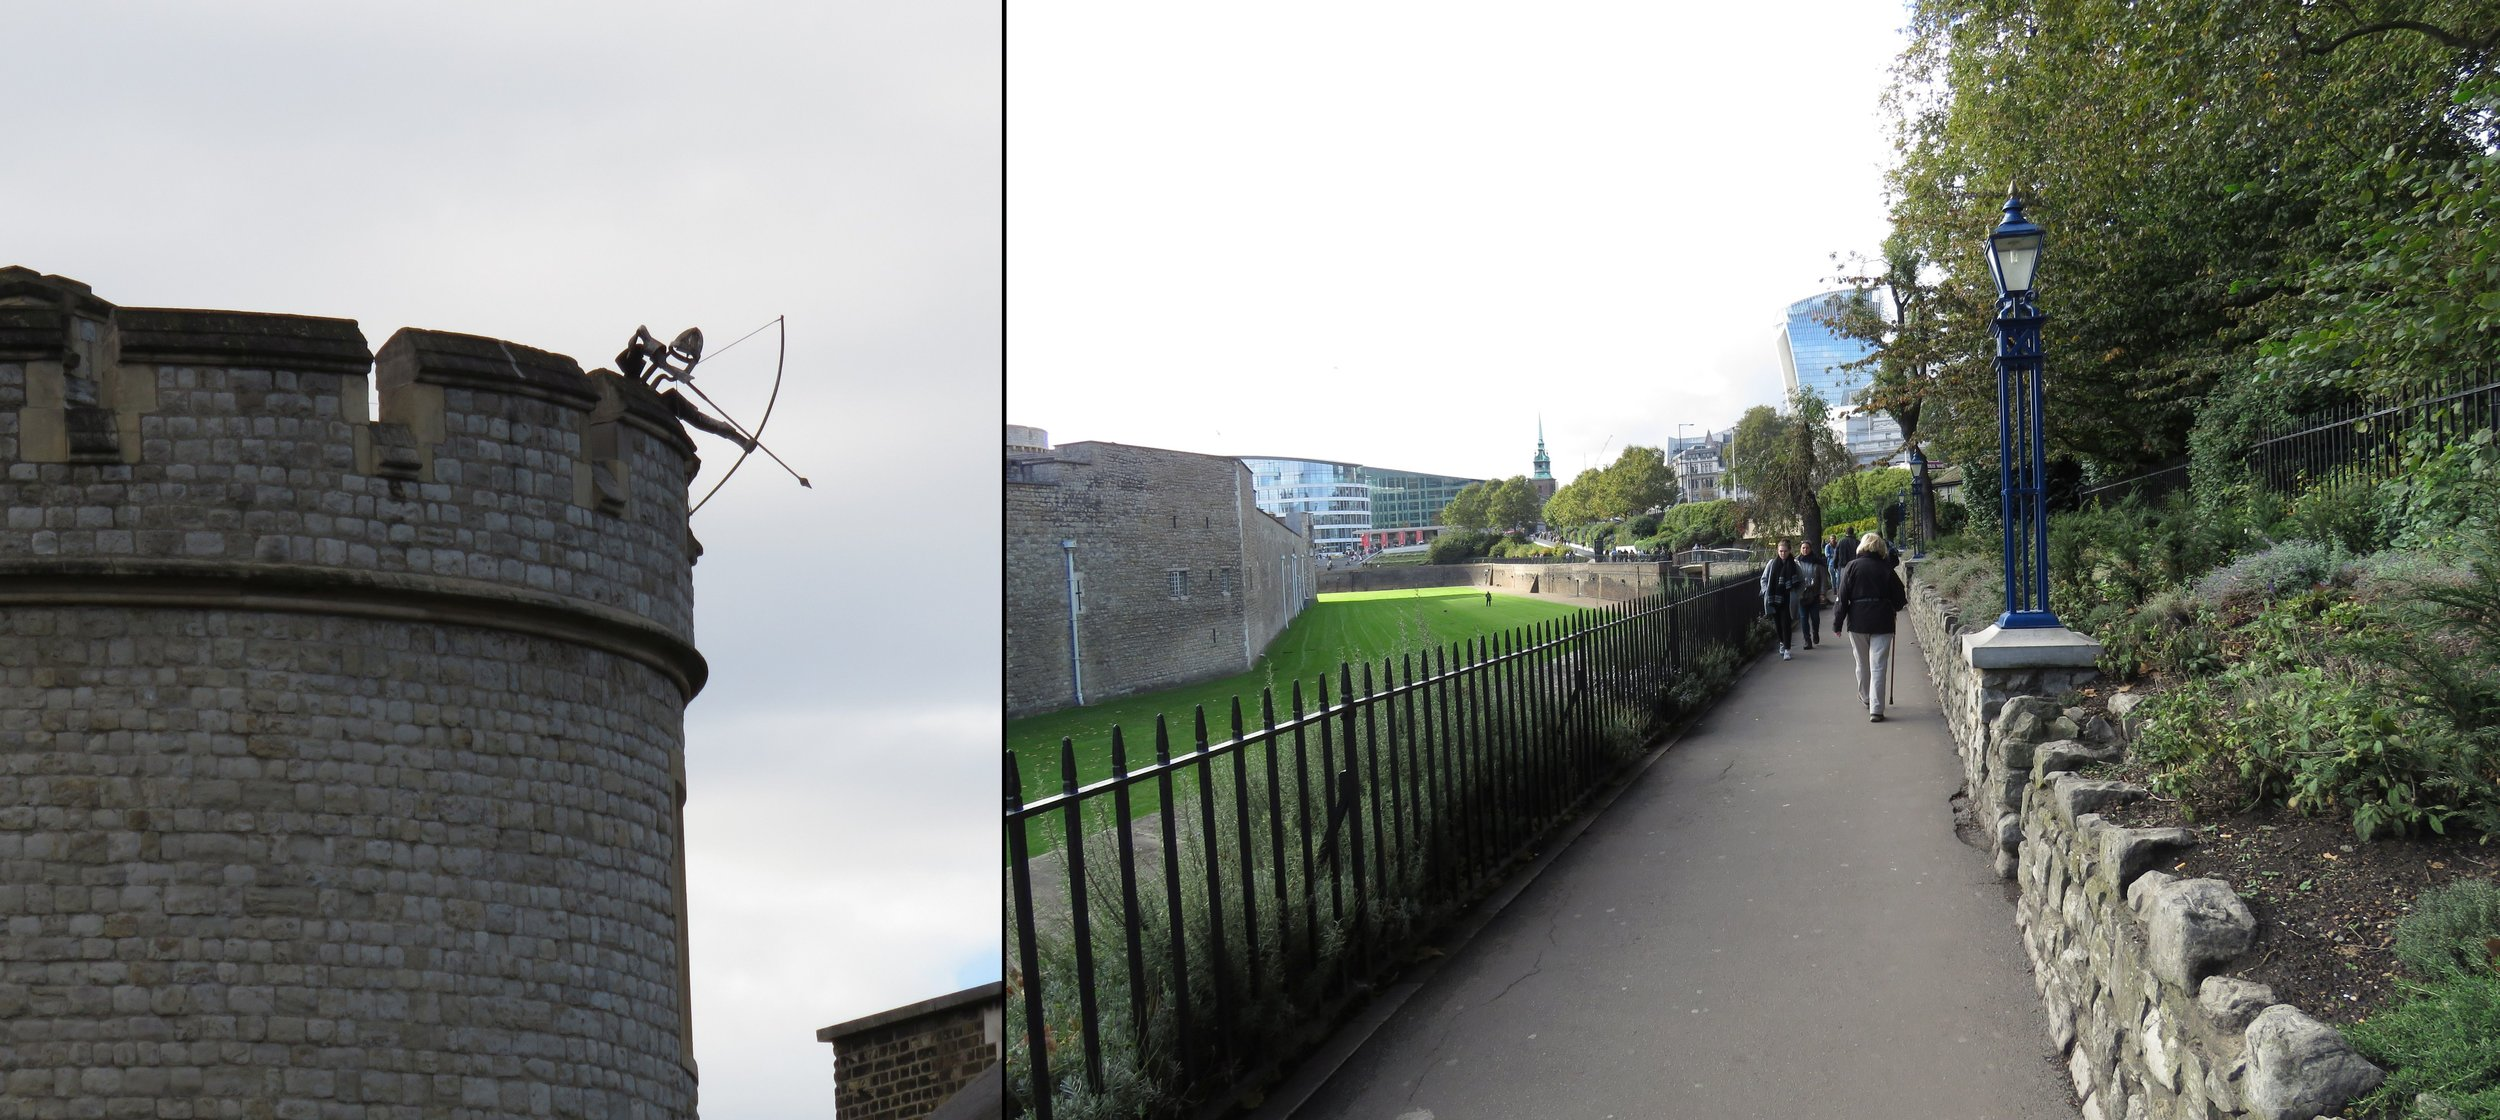 Beware the archer as you approach the Tower; walking alongside the old moat.